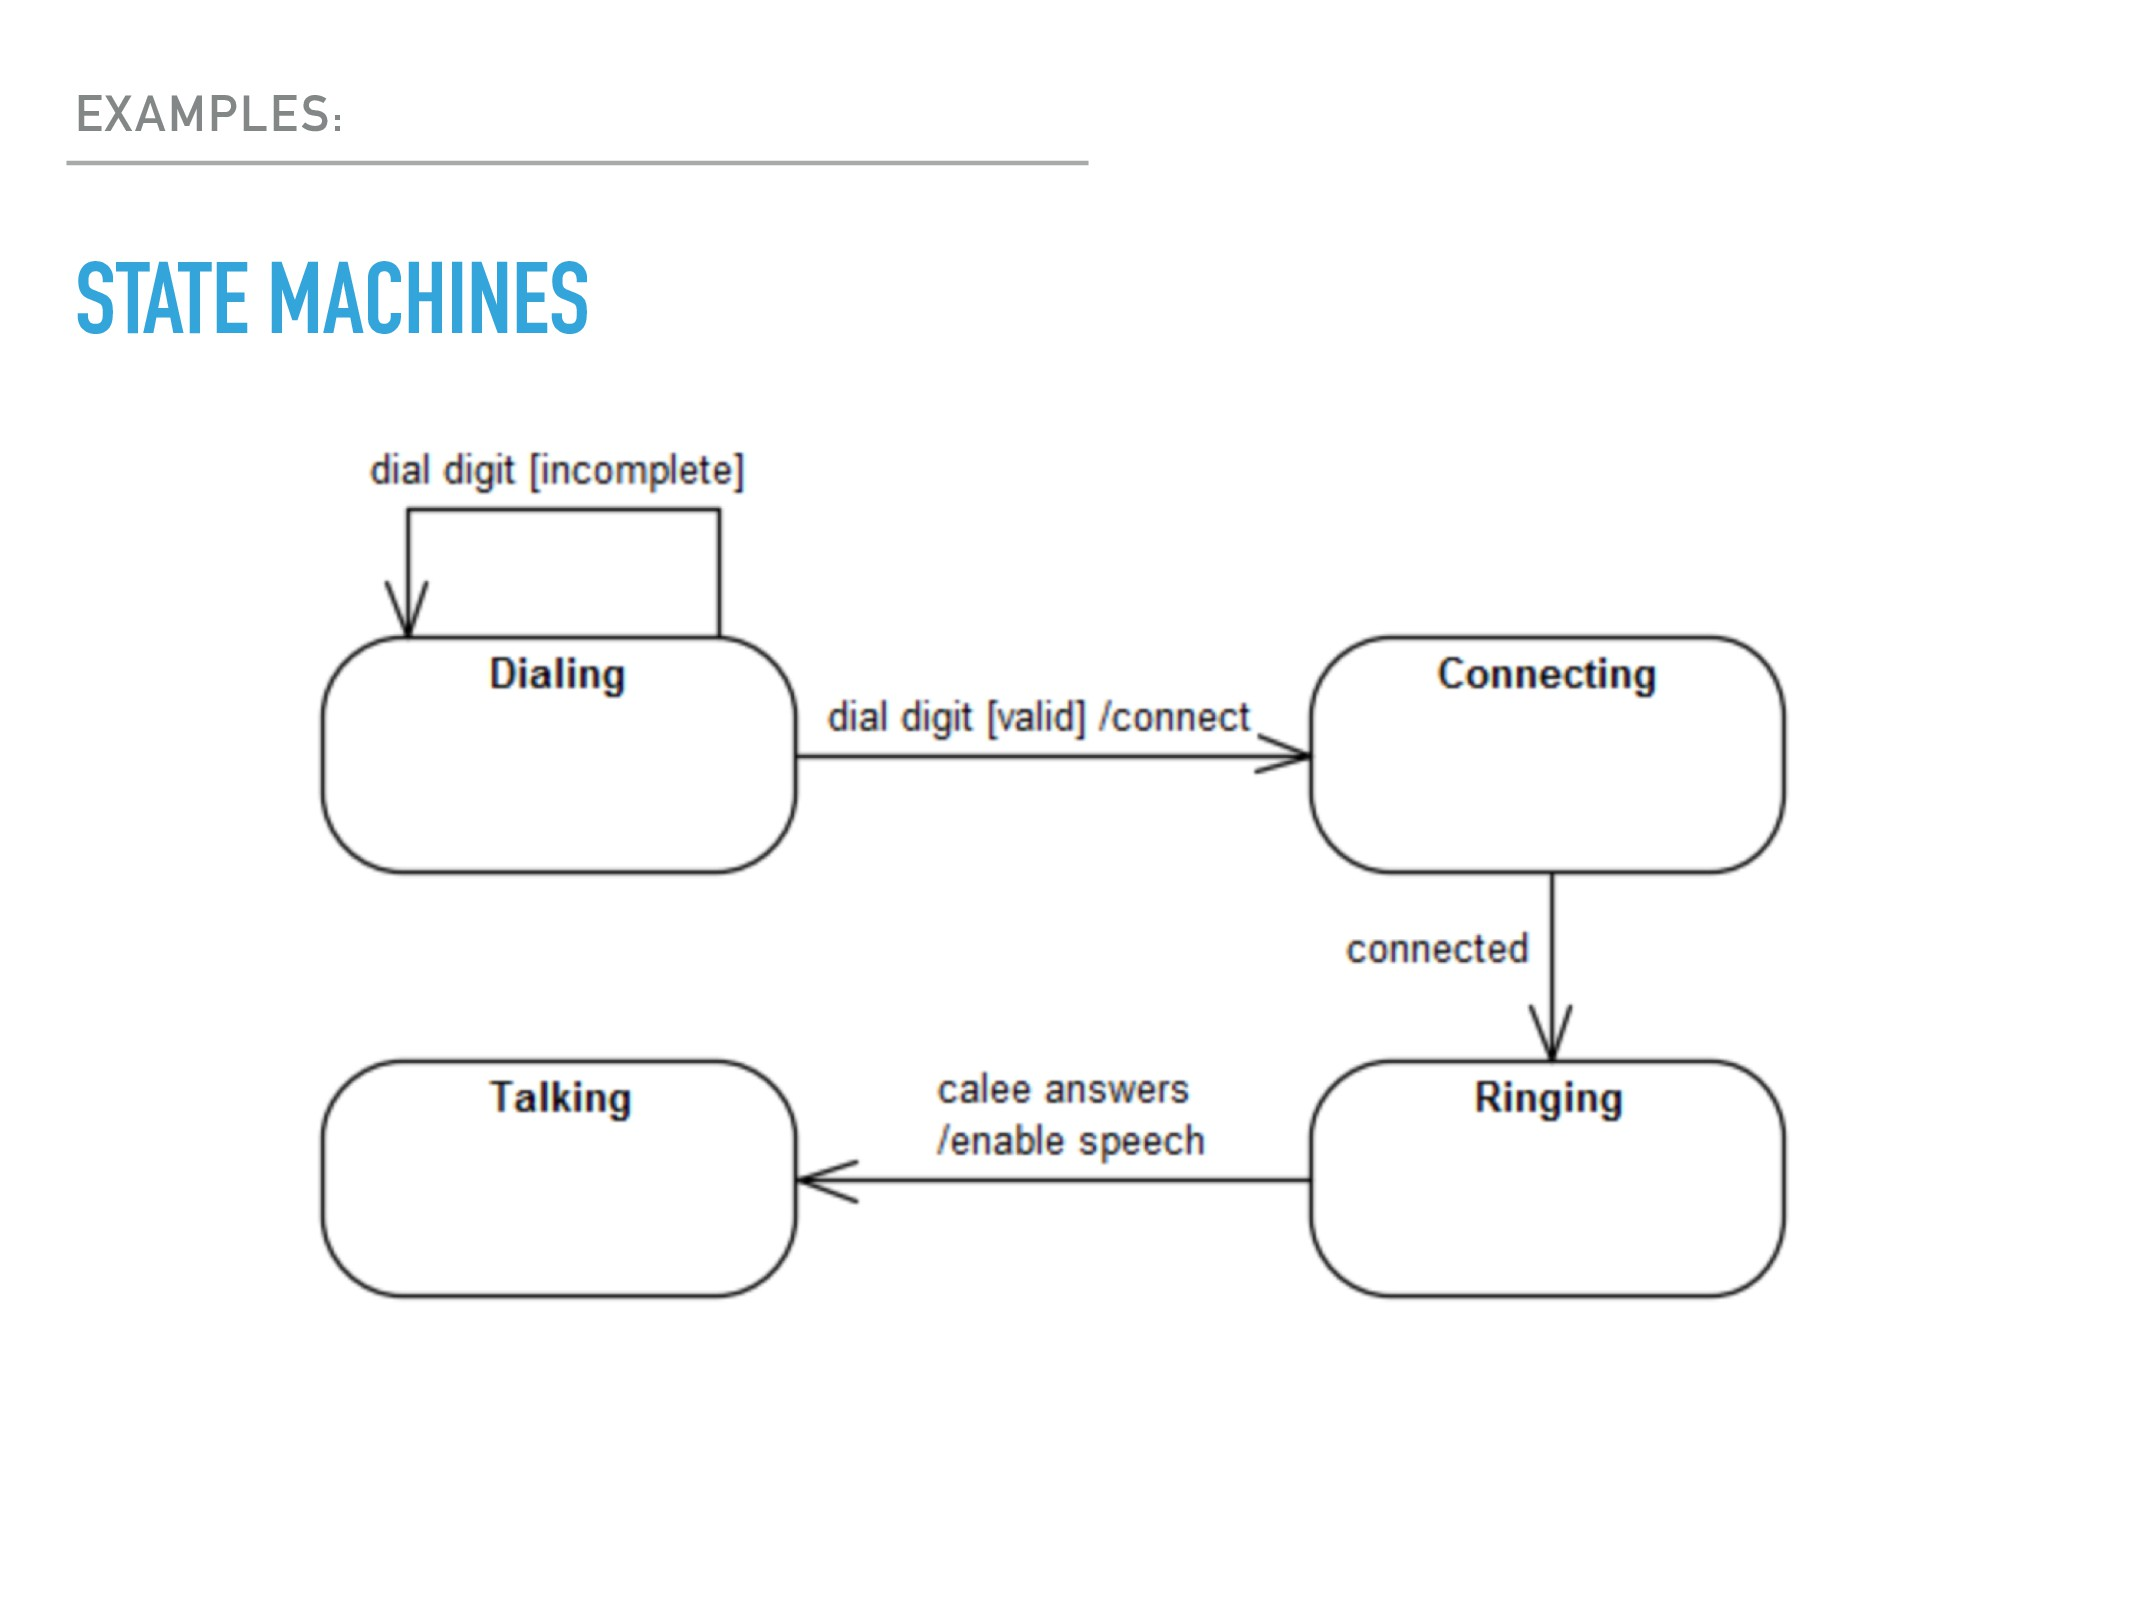 EXAMPLES: STATE MACHINES